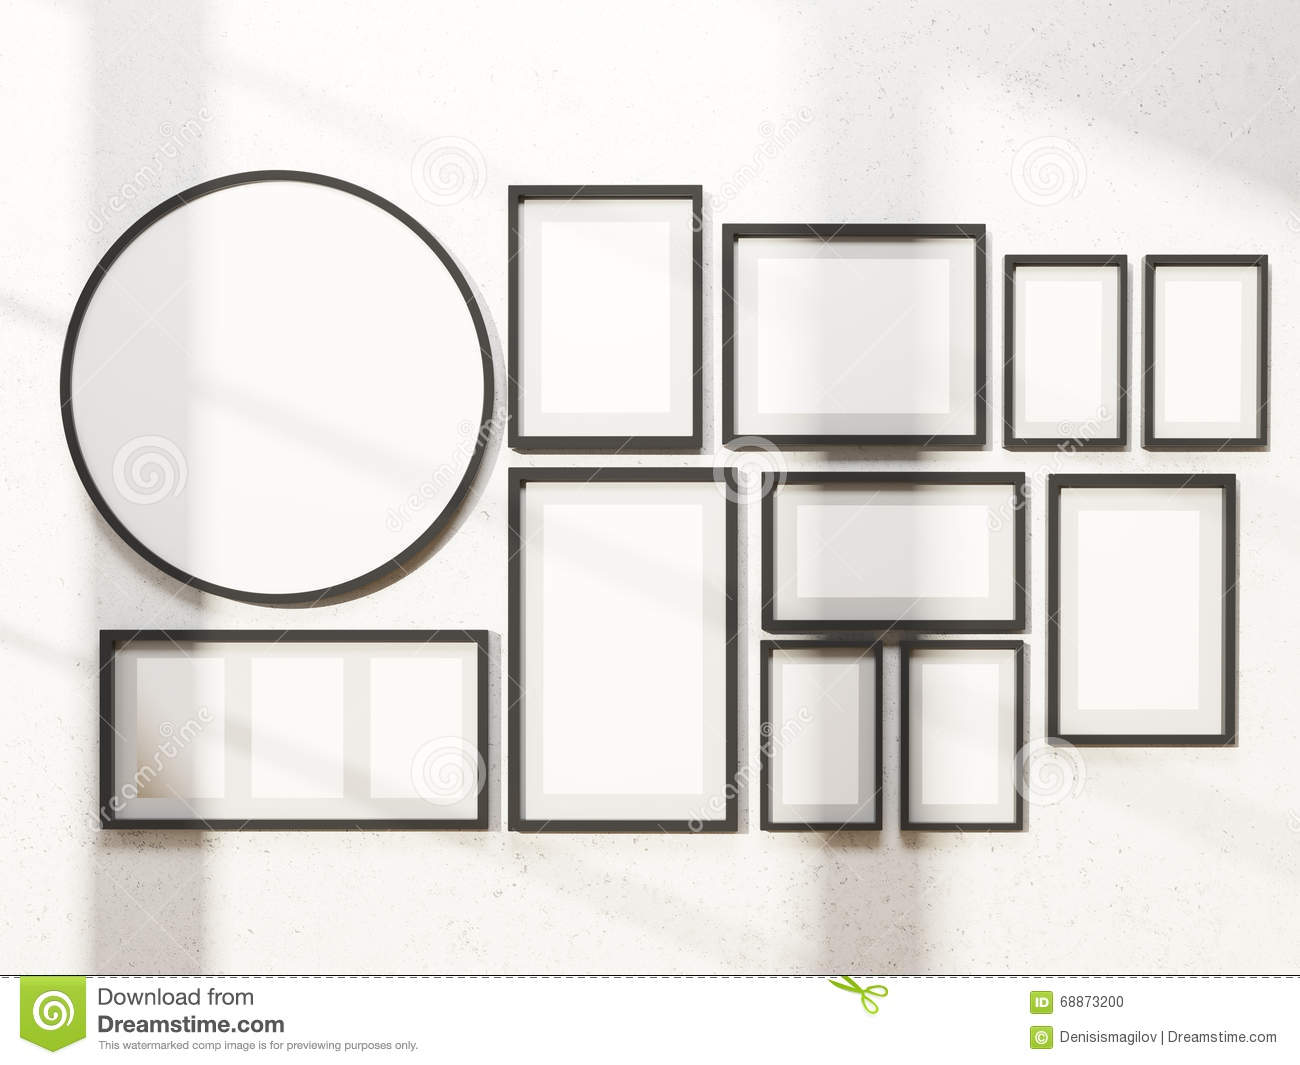 Frames On Wall frames on wall stock illustration - image: 68873200